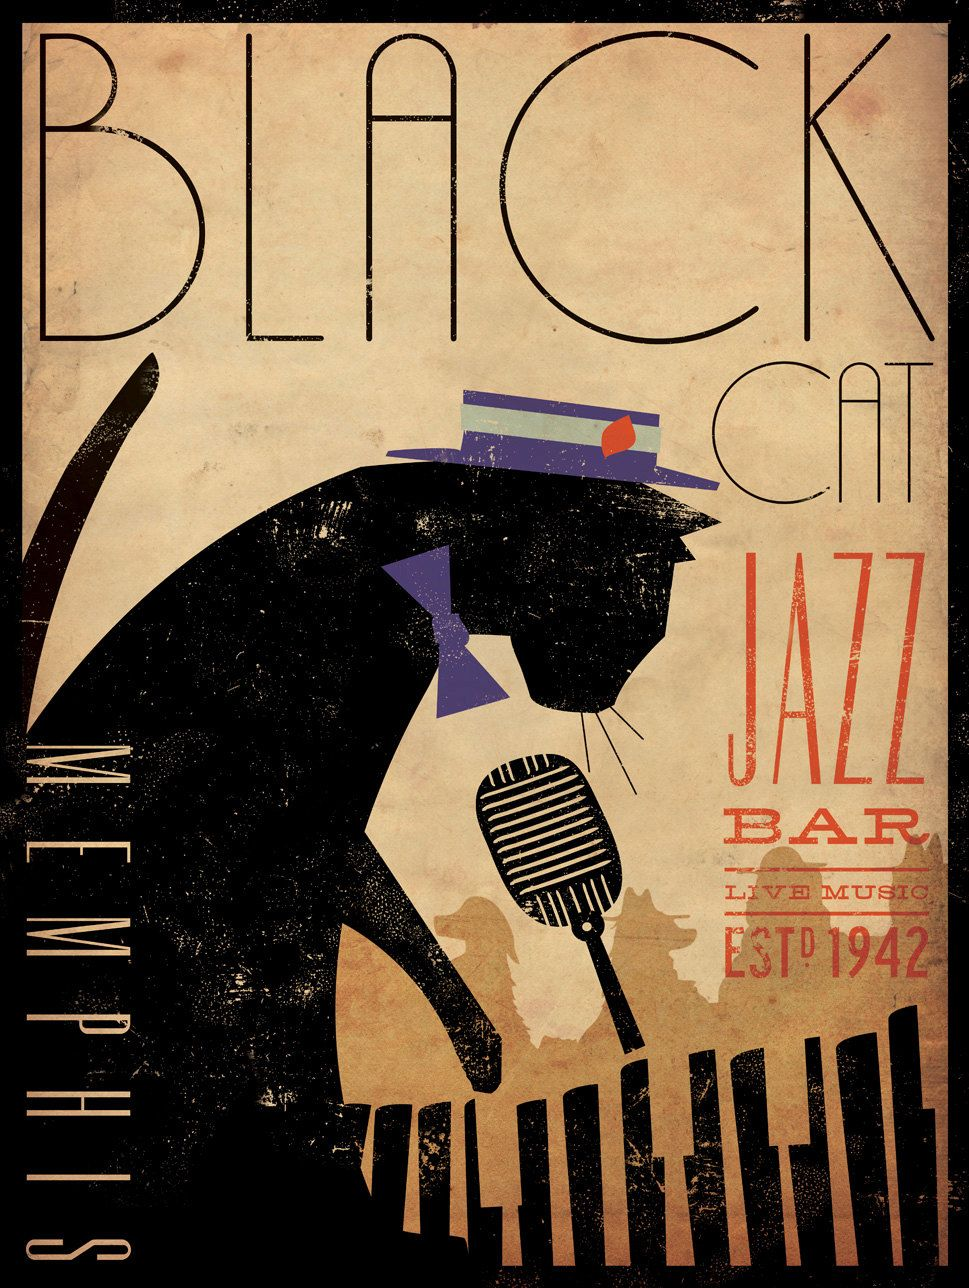 327 best Jazz images on Pinterest | Posters, Jazz art and Jazz poster